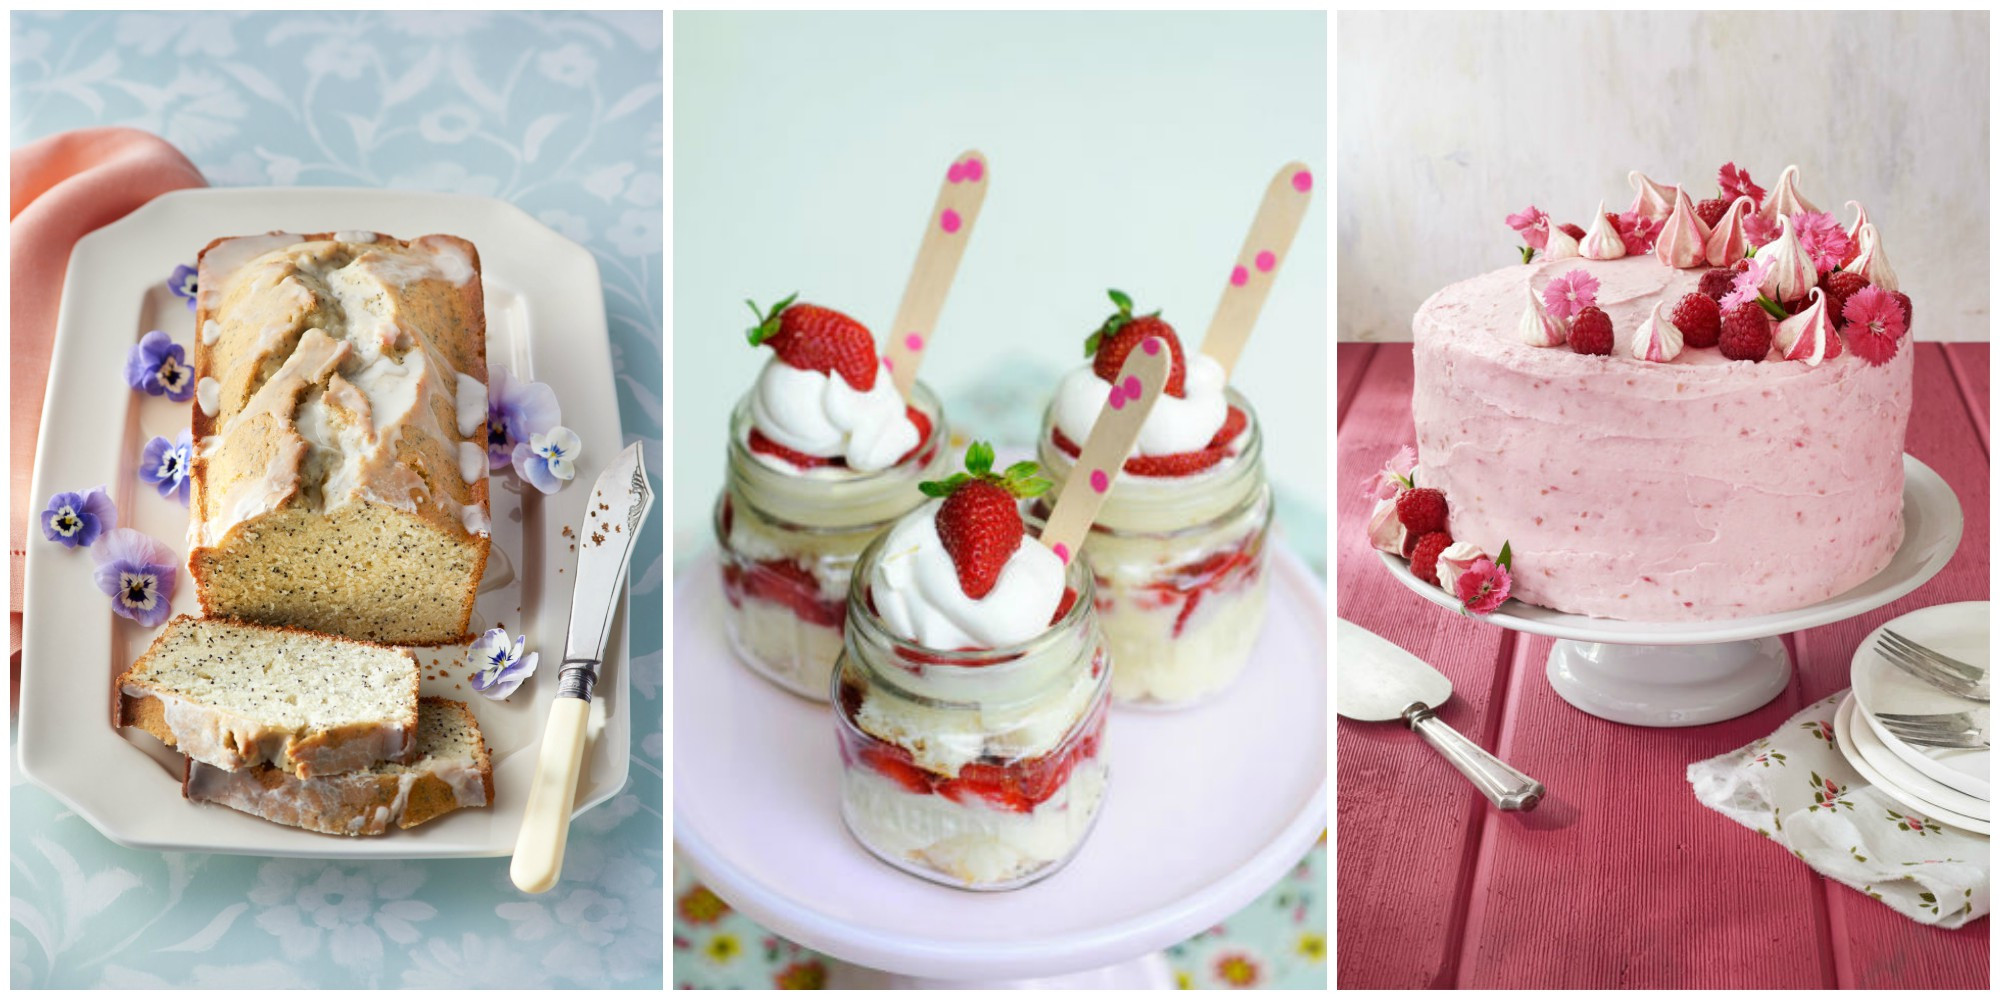 Desserts For Mothers Day  12 Best Mother s Day Desserts Easy Ideas for Mothers Day